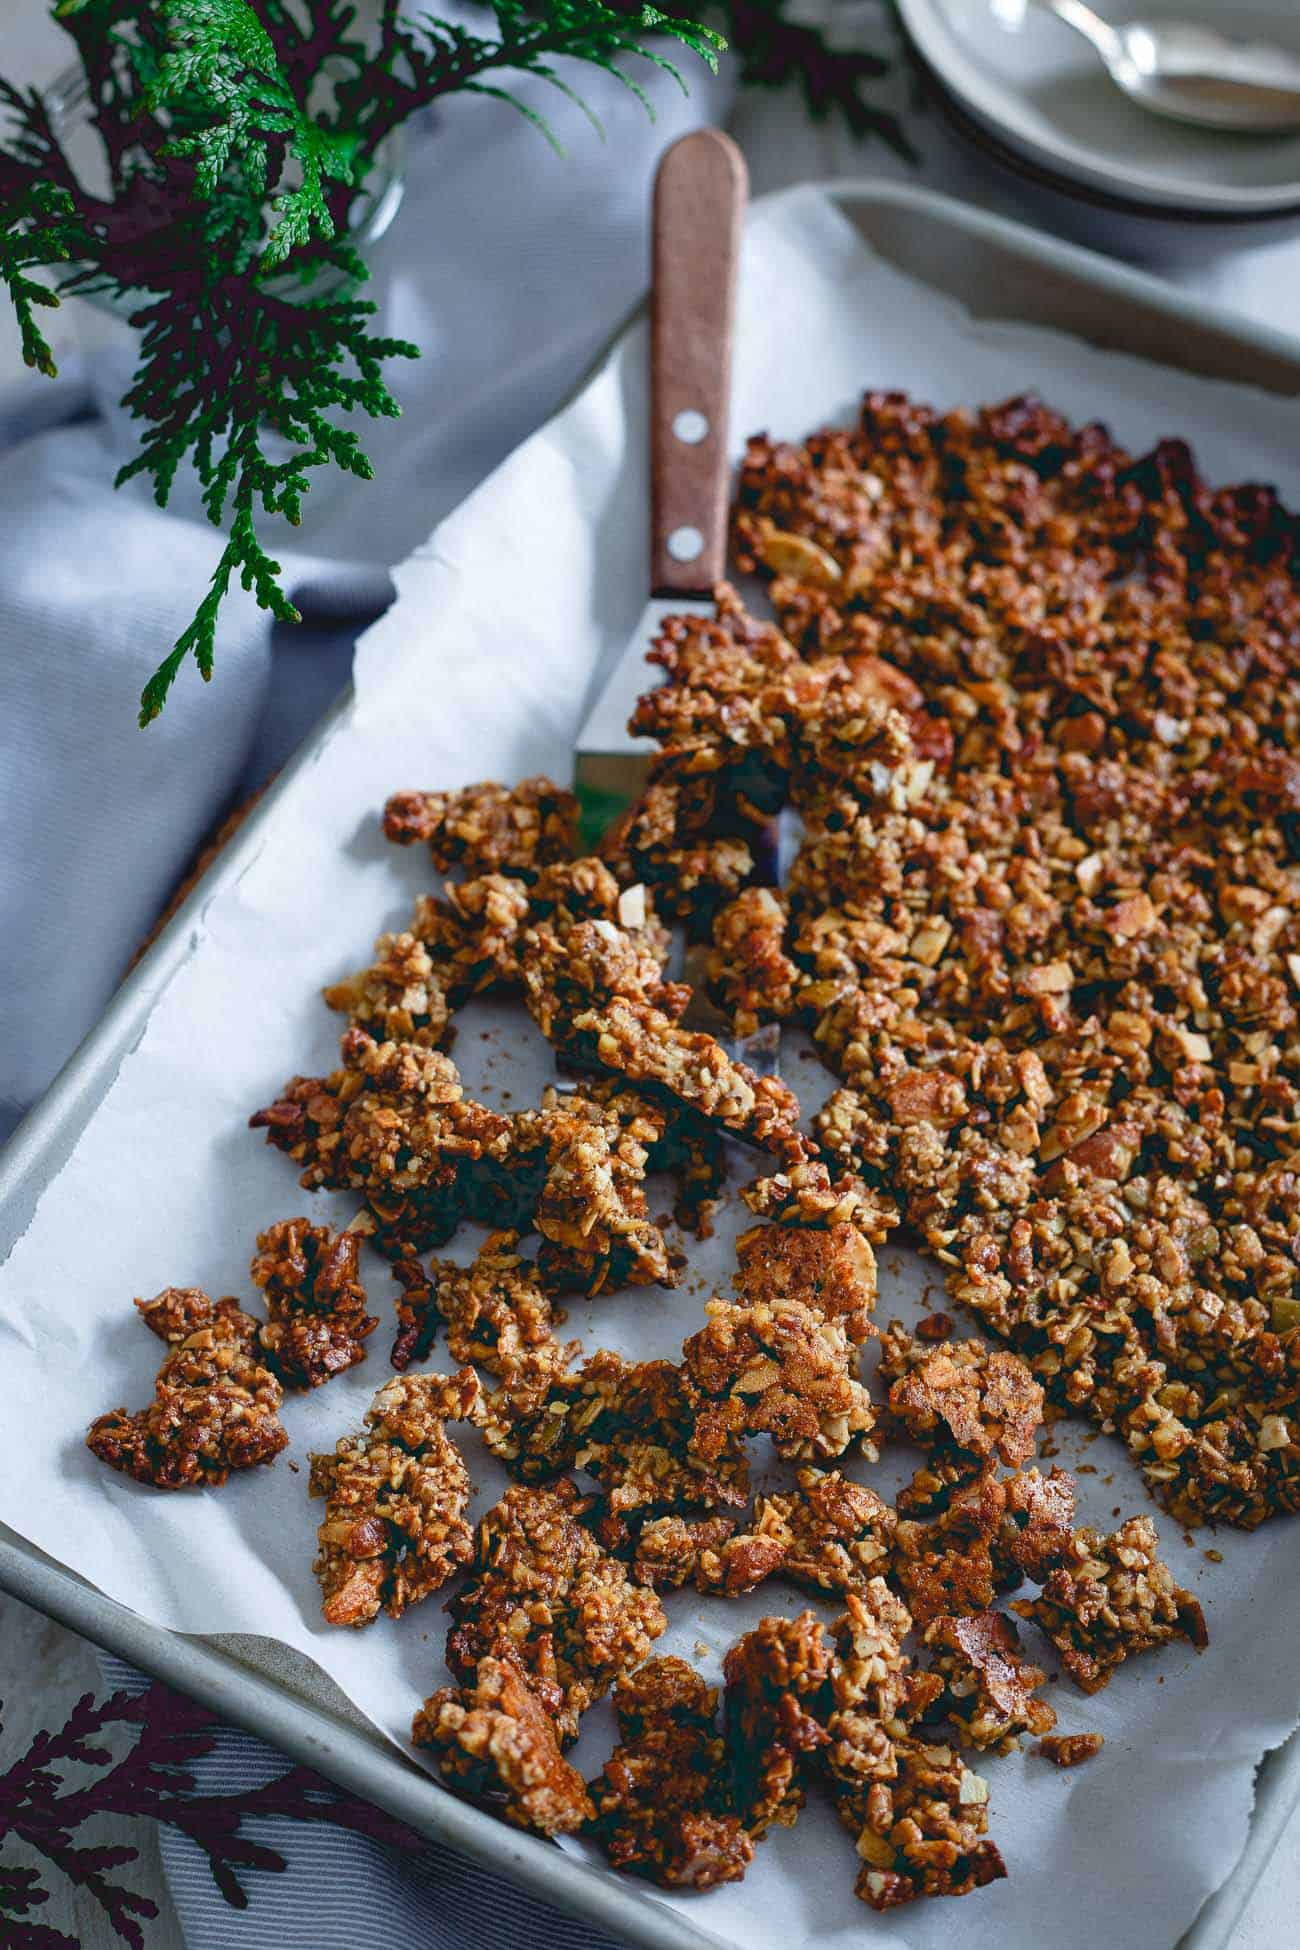 Perfectly crunchy, this paleo gingerbread granola is made of just nuts, seeds, natural sweetener and spices.